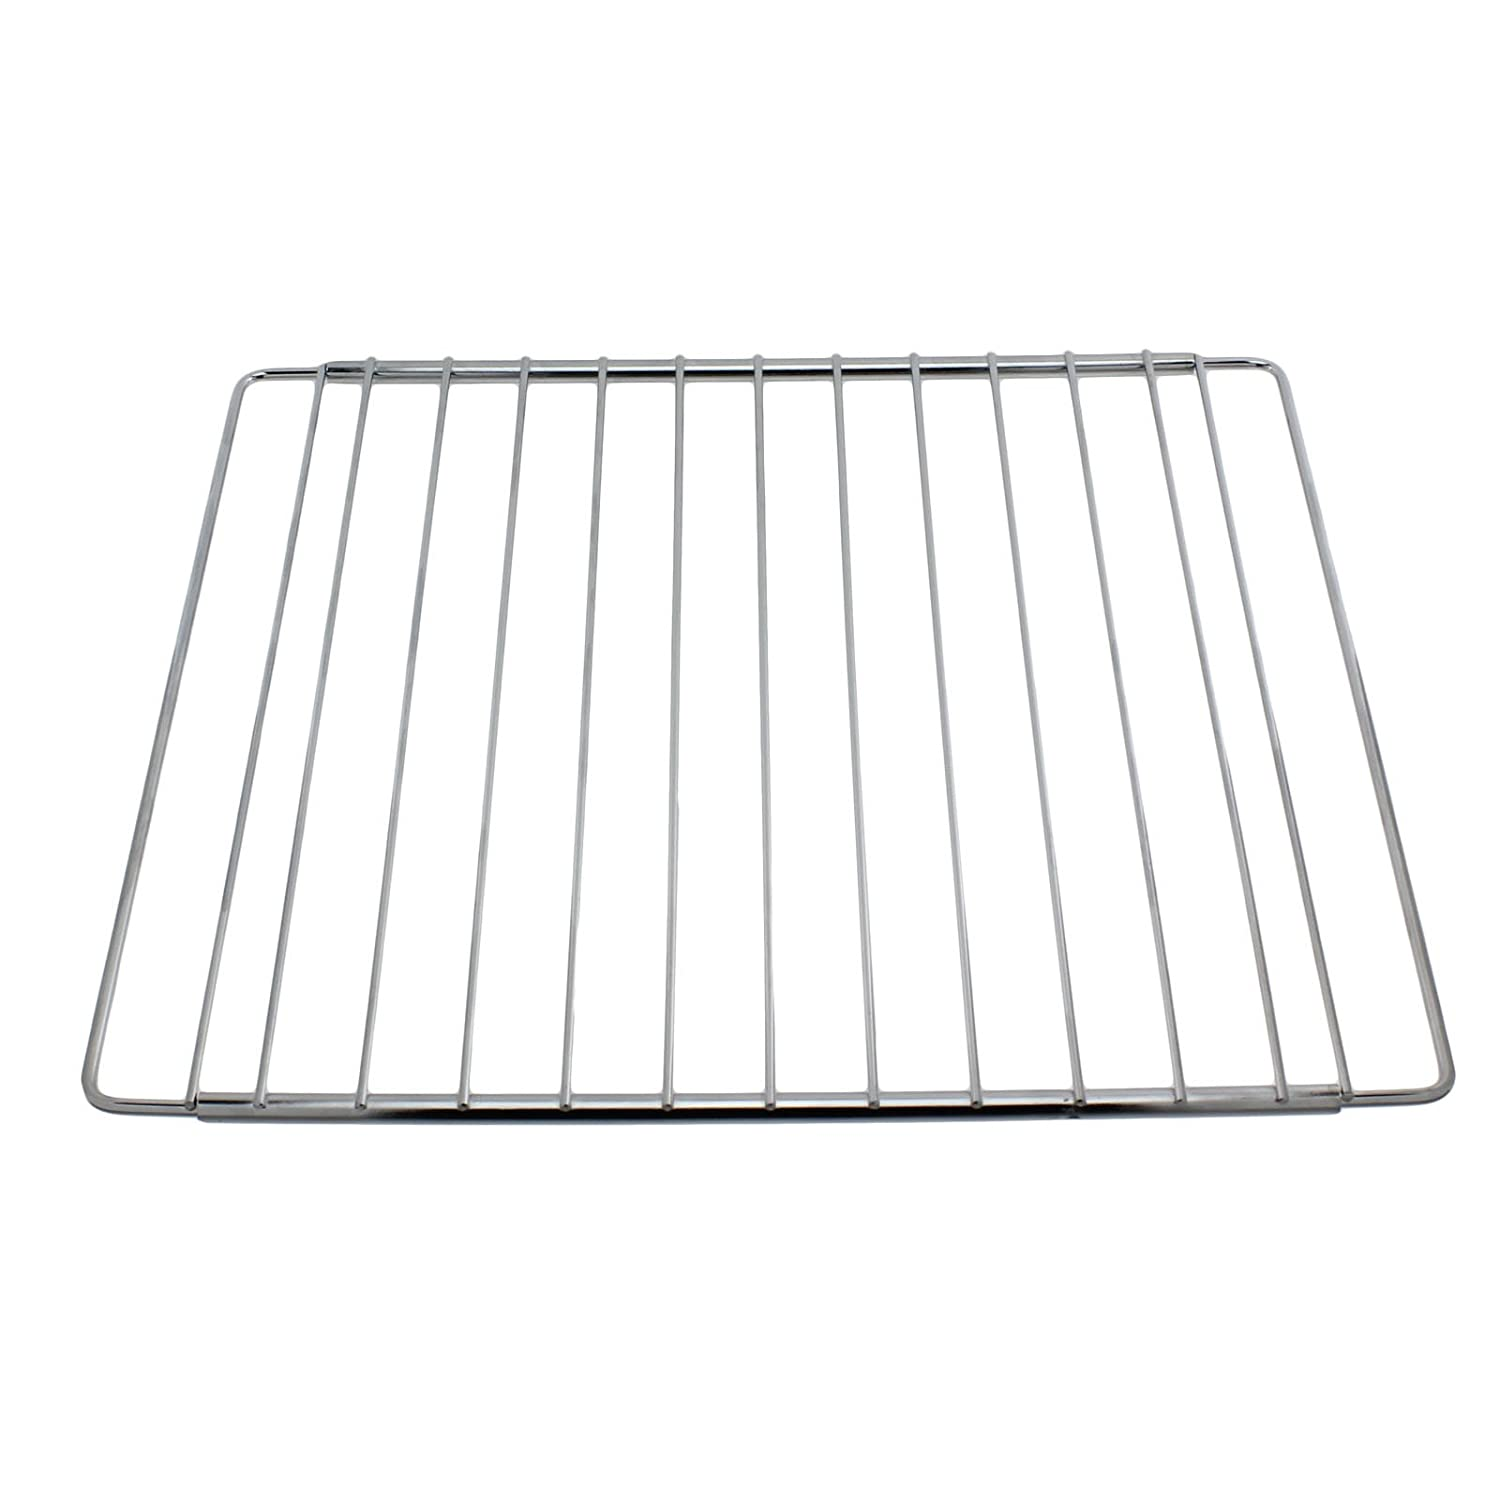 SPARES2GO Adjustable Extendable Oven Cooker Shelf For Bailey Caravan/Motorhome